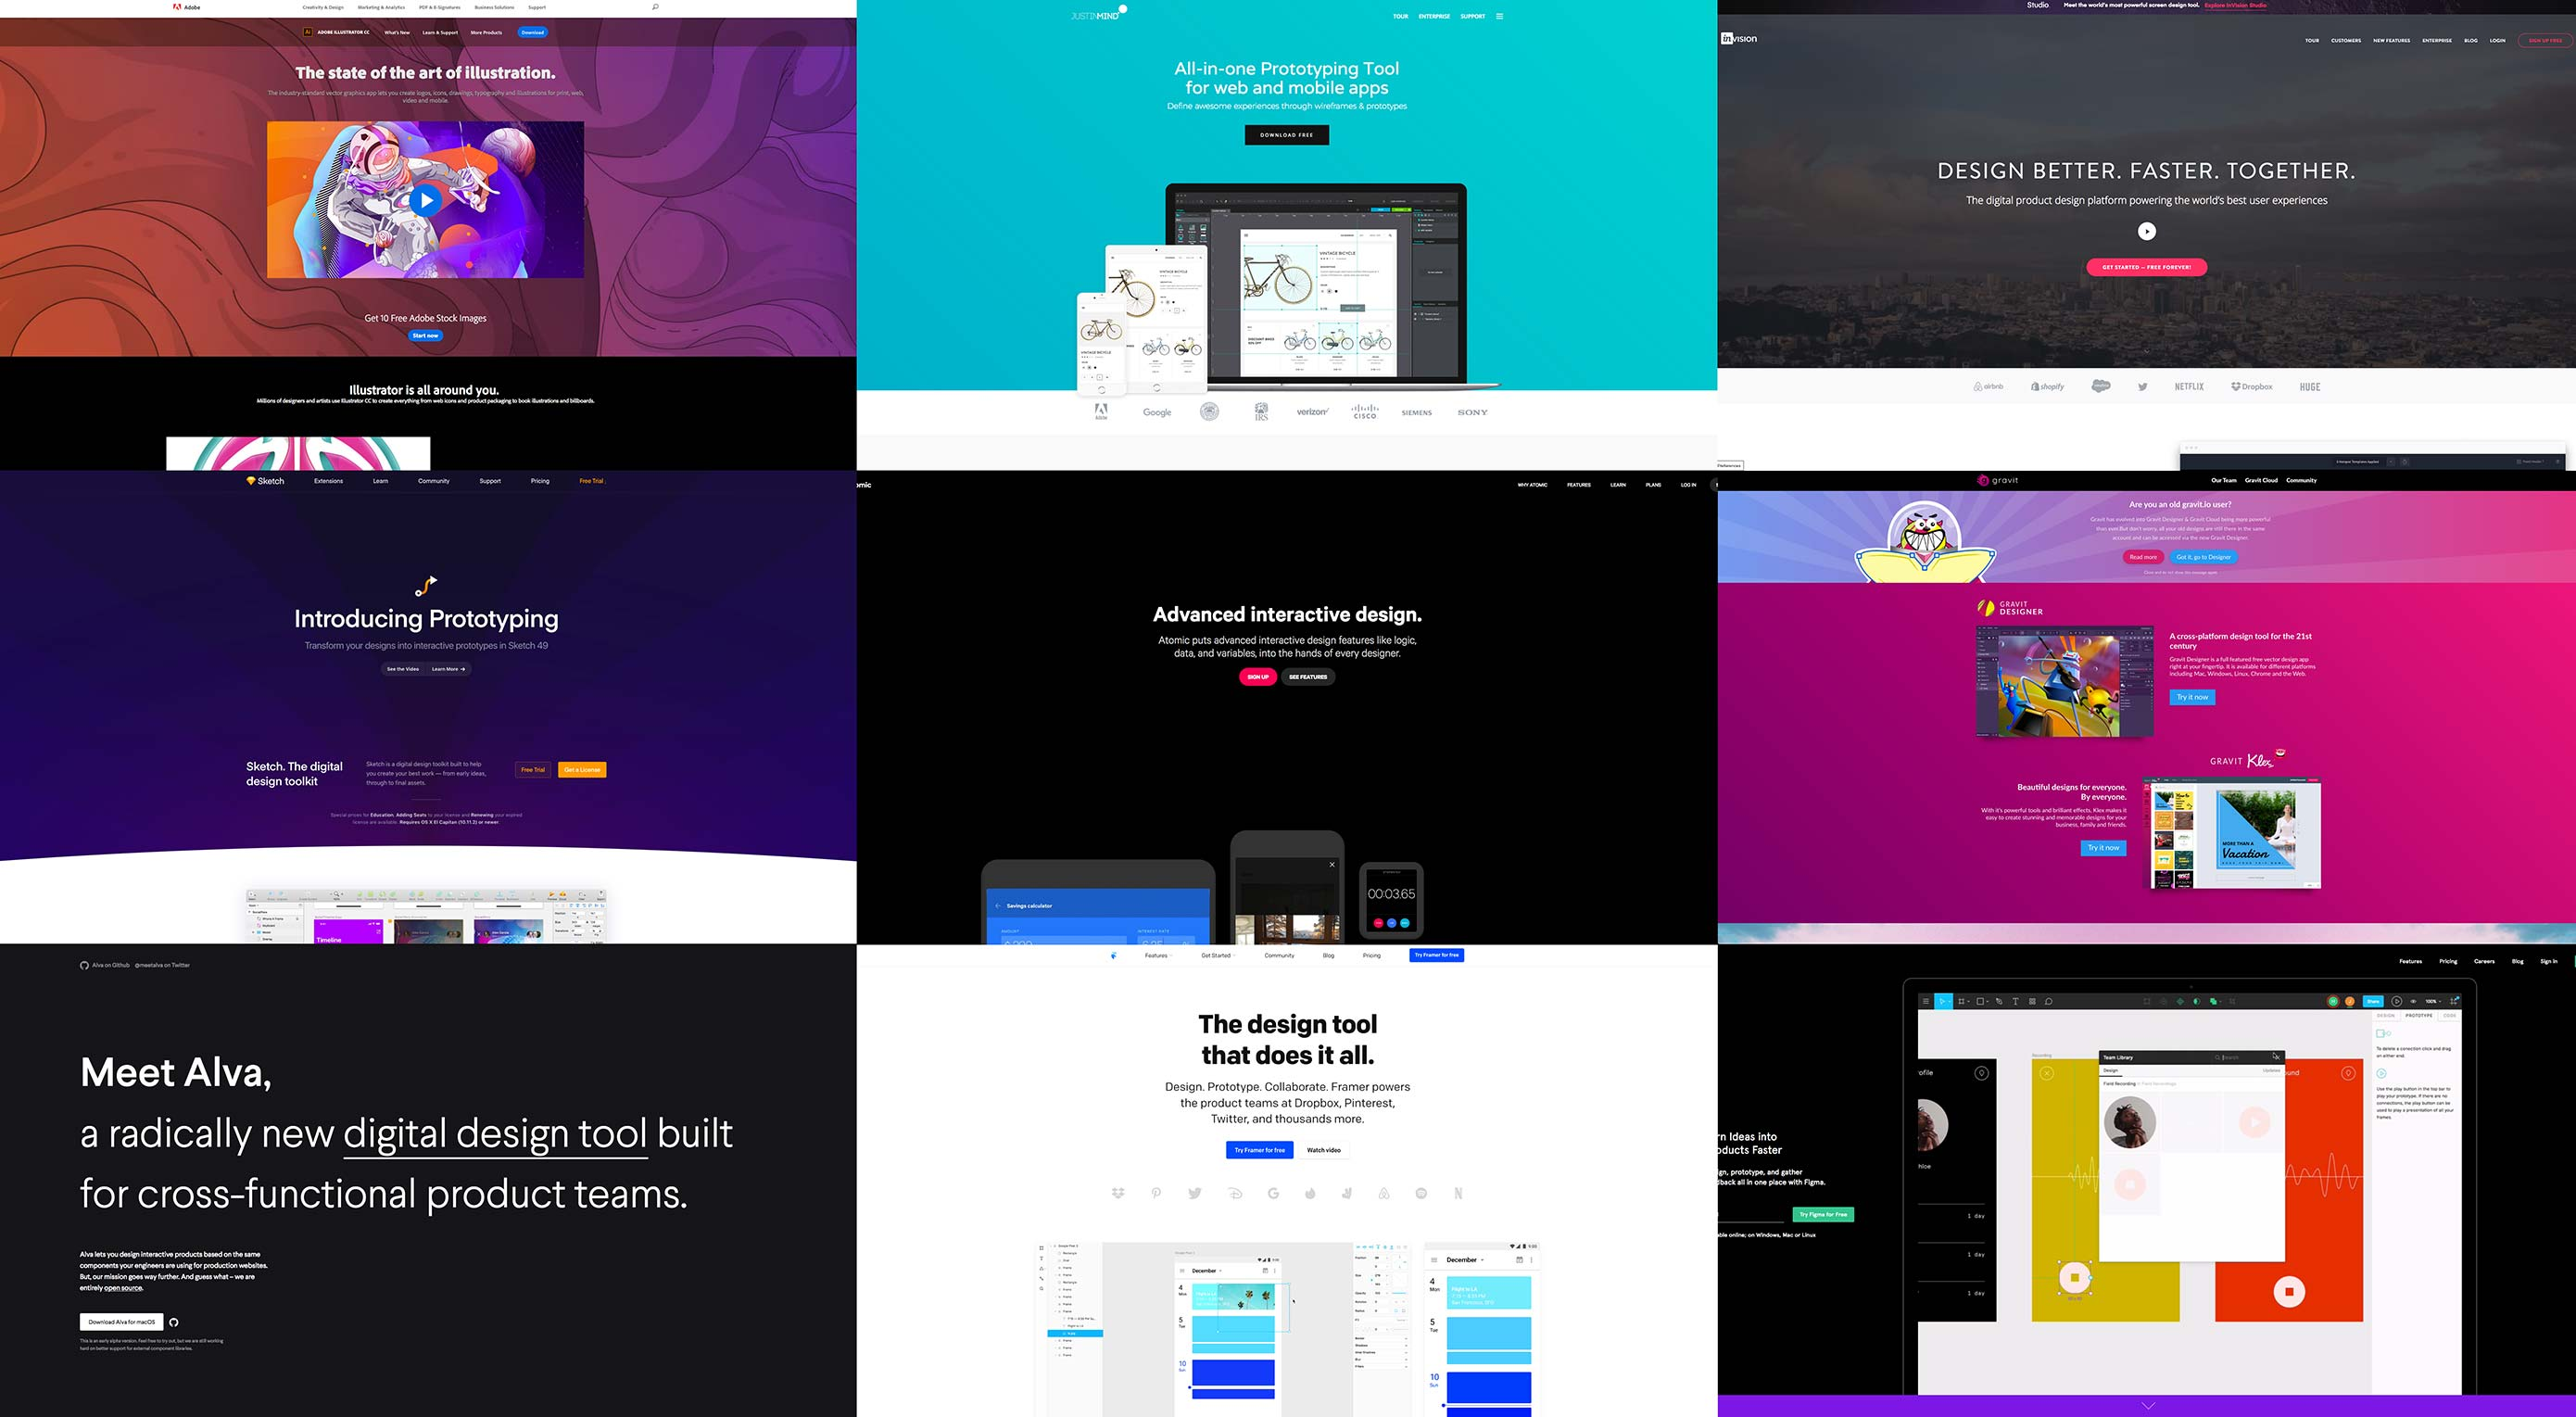 From Fireworks to Framer: Is Software Choice Good For Design?